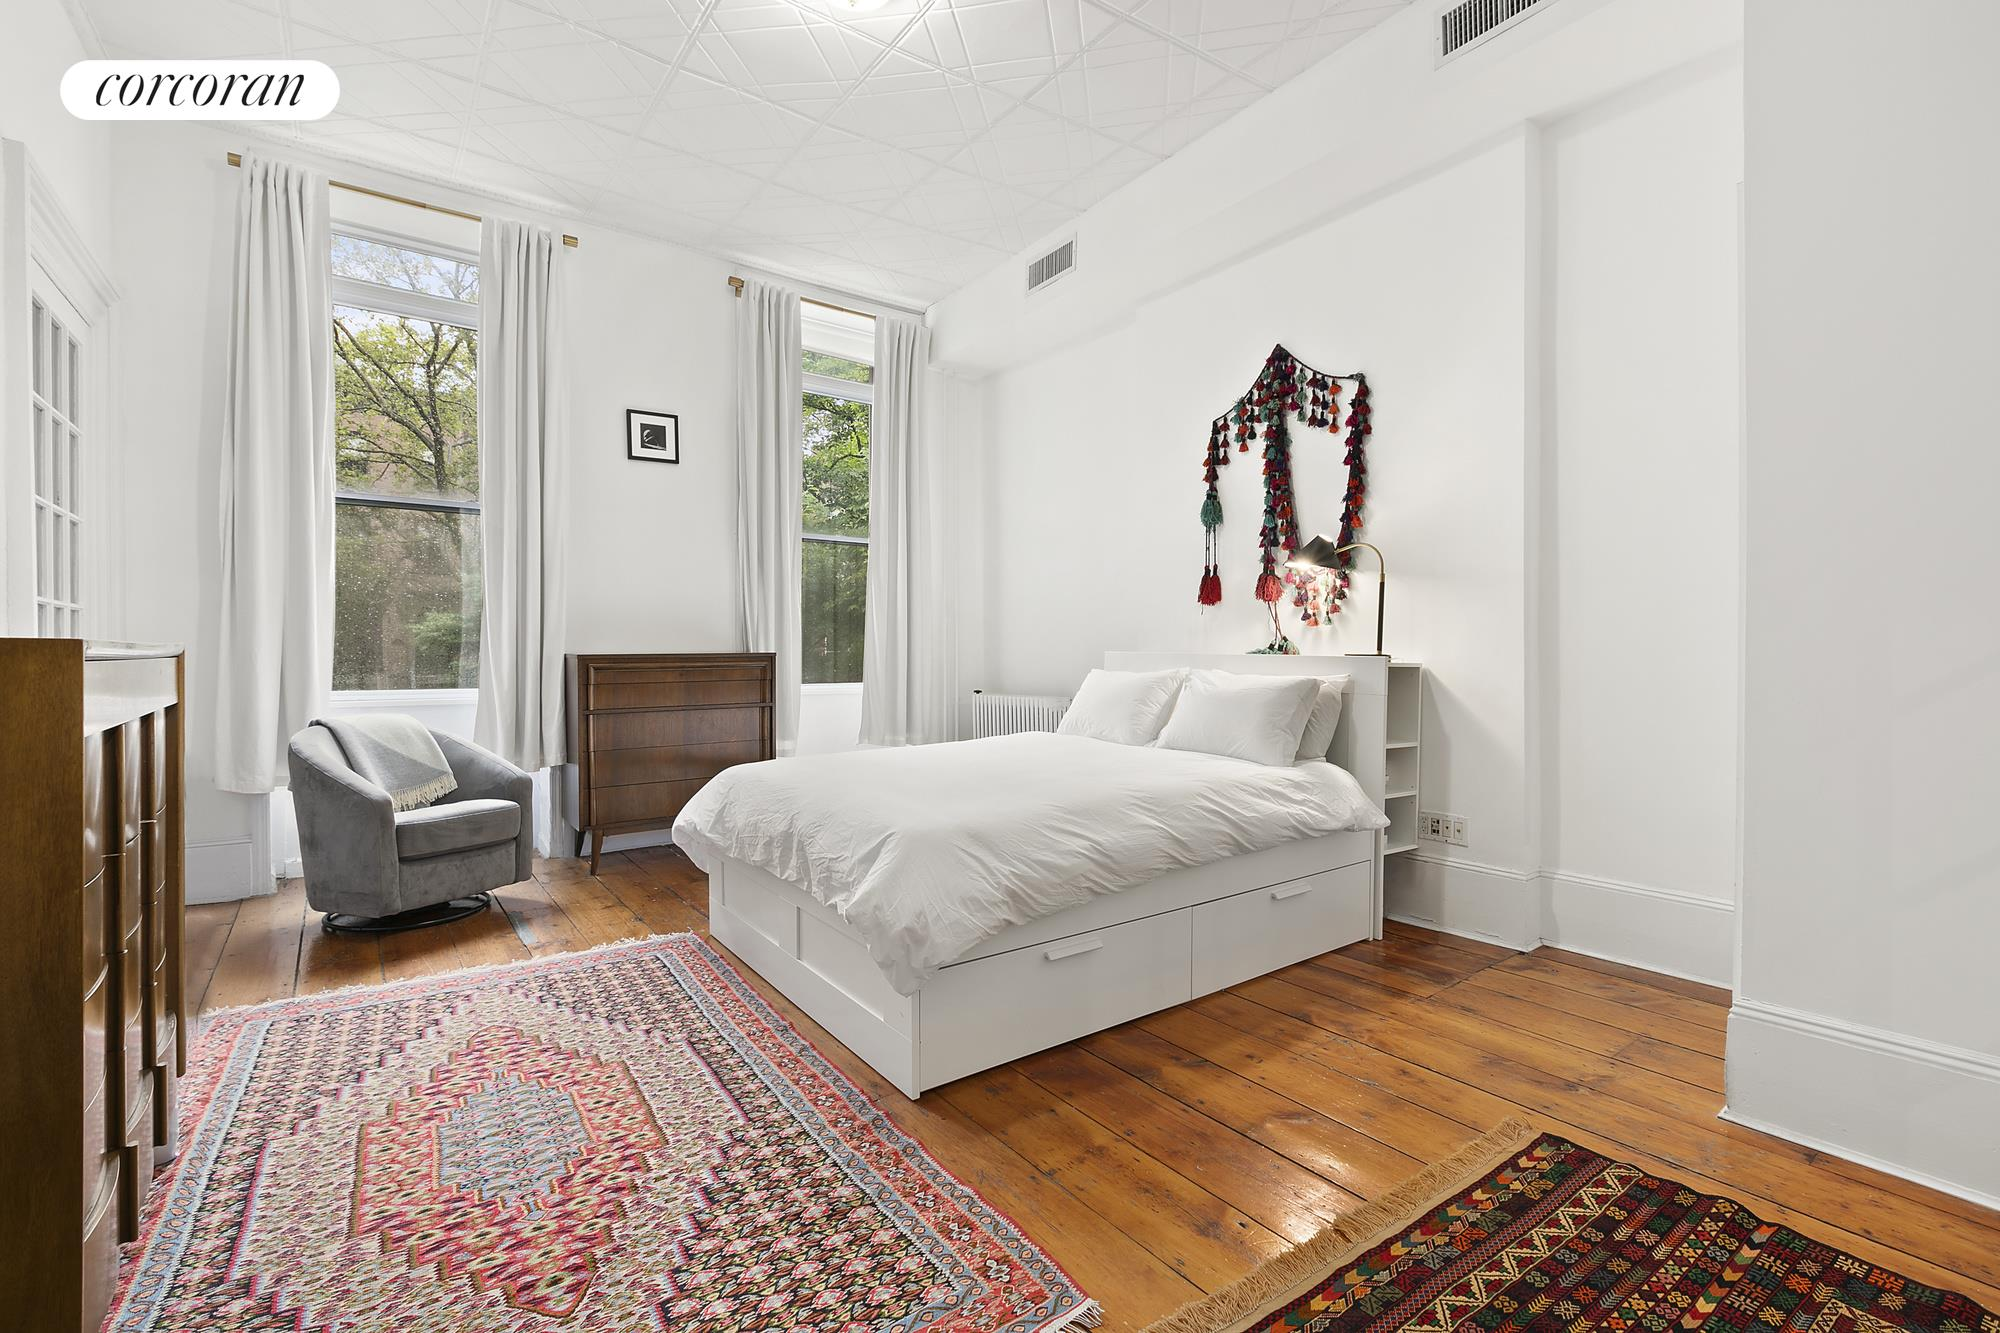 33 2nd Place, Apt PARLOR, Brooklyn, New York 11231